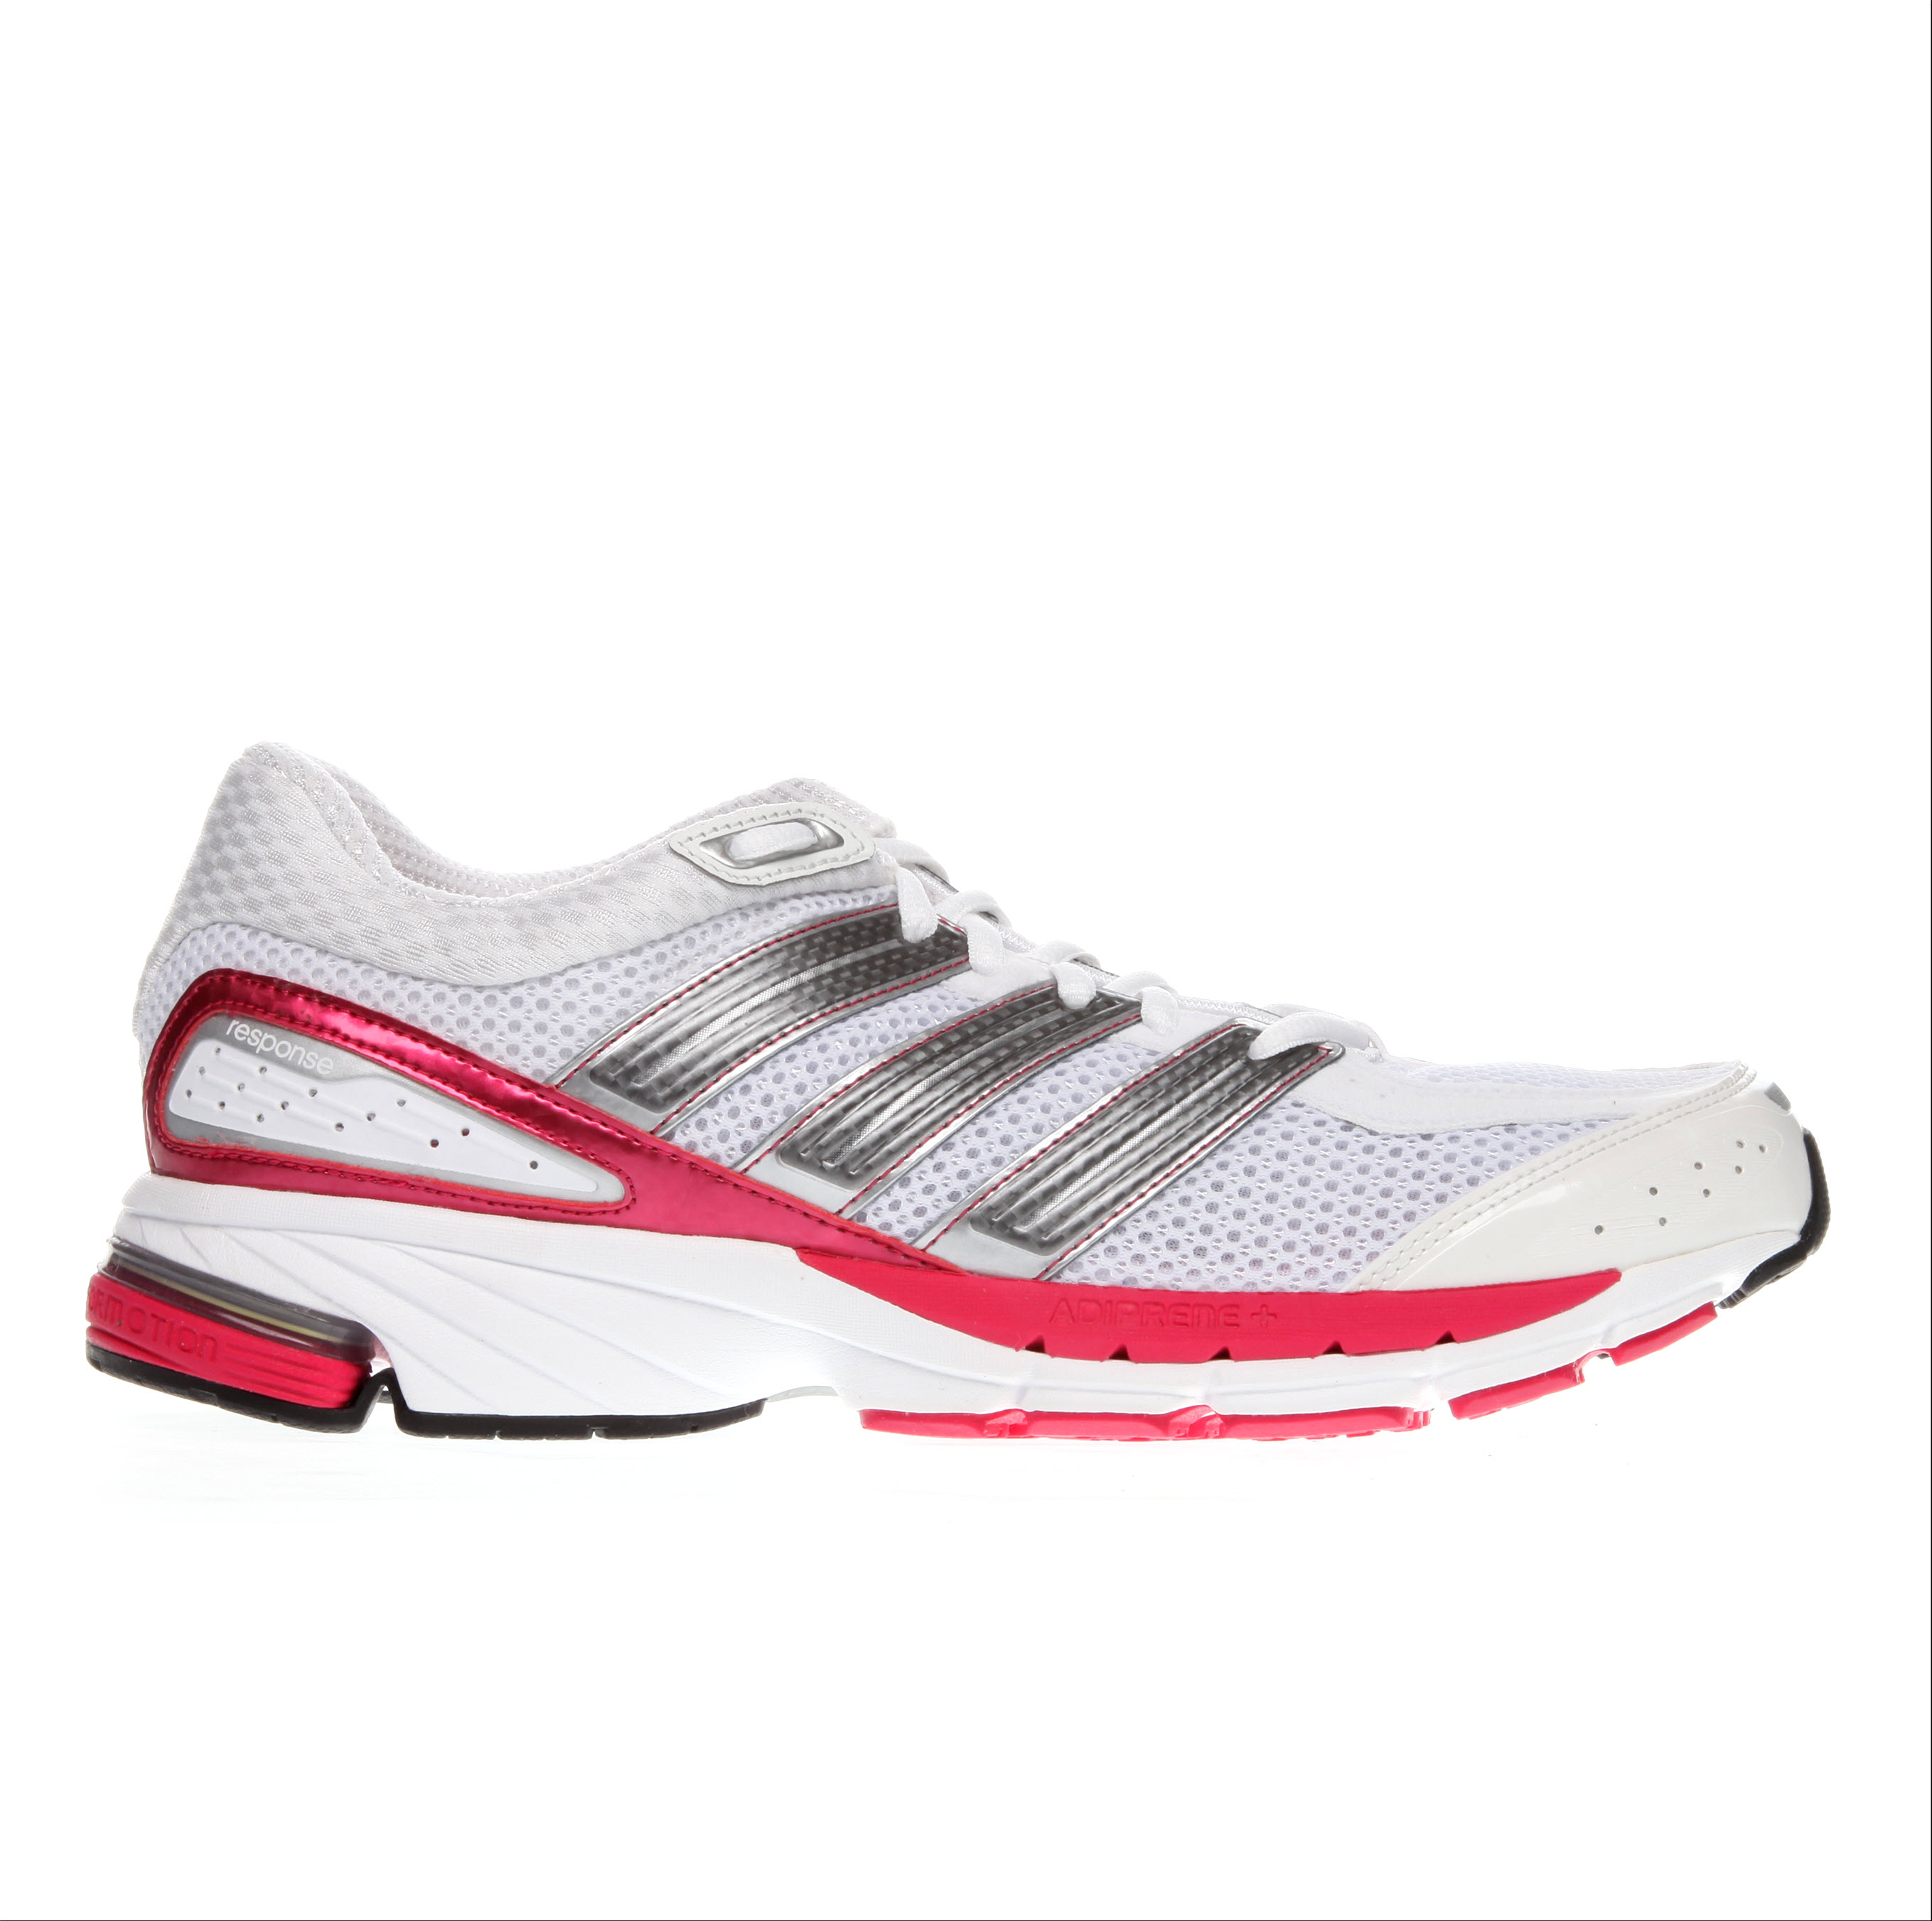 Internal | adidas | Response Cushion 21 Shoes aw12 | Wiggle